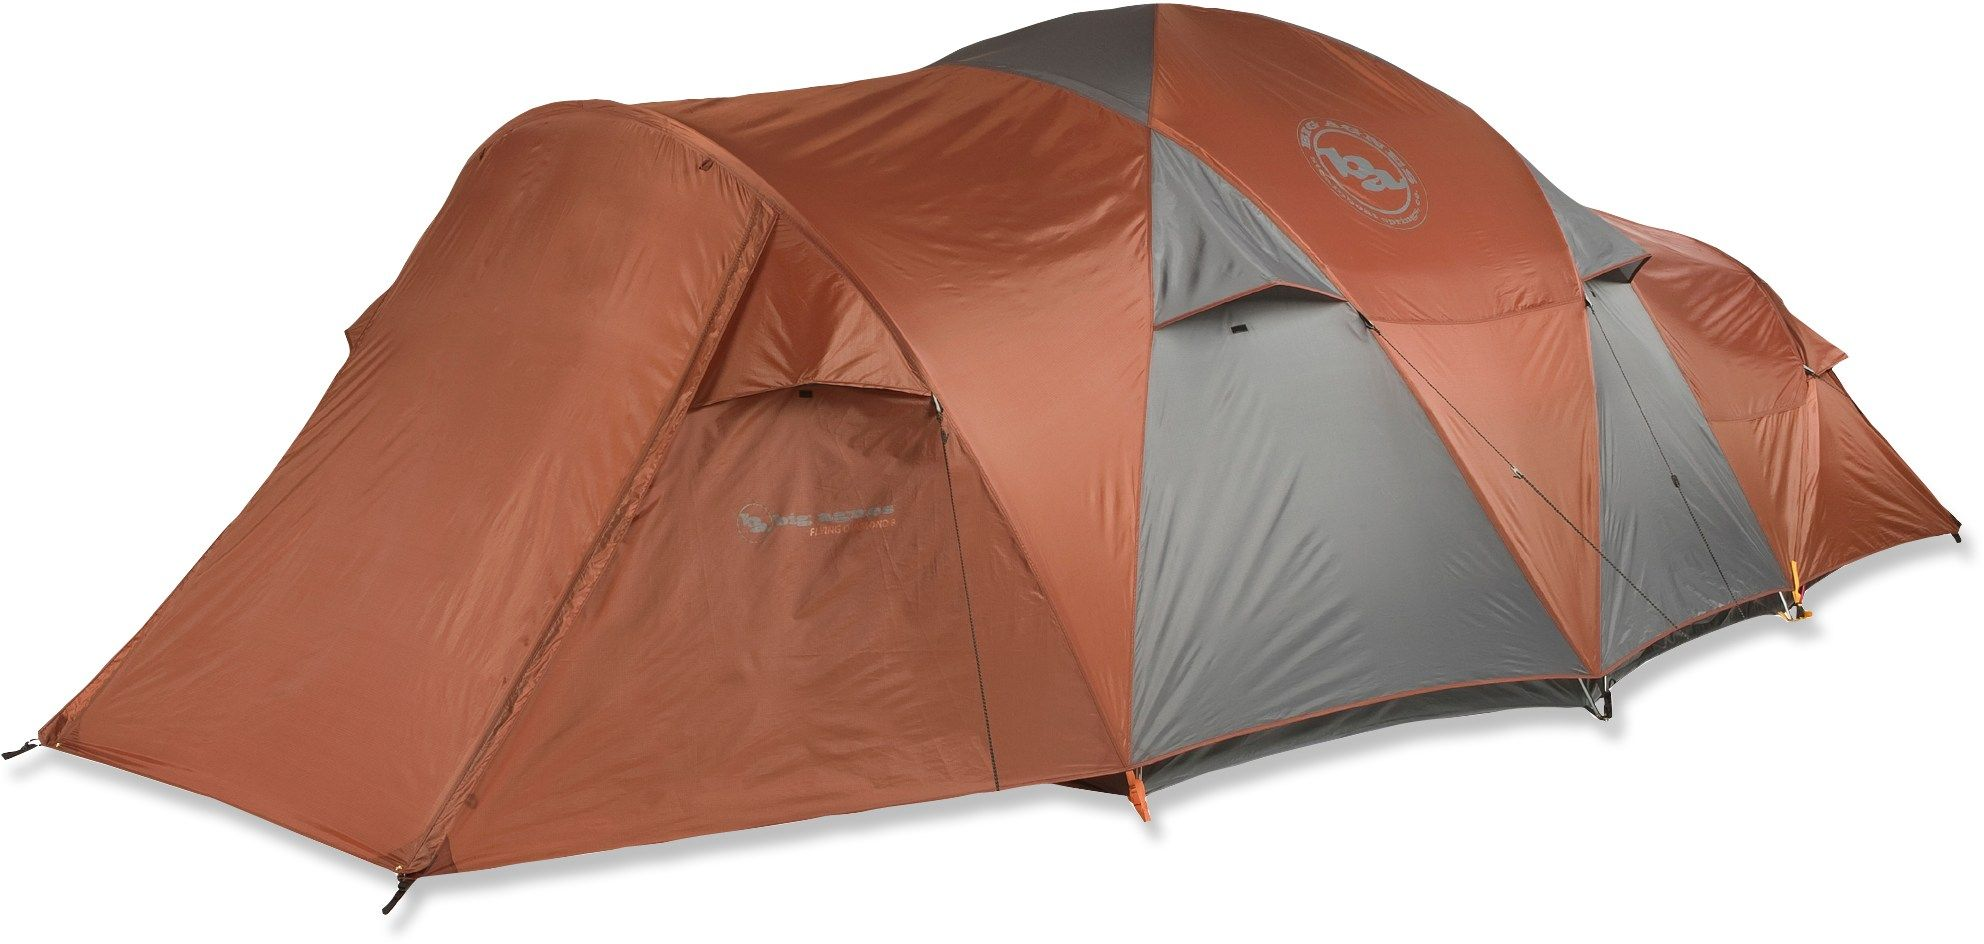 Big Agnes Flying Diamond 8 Tent at REI.com  I absolutely love this tent. It holds up well in wind and rain.